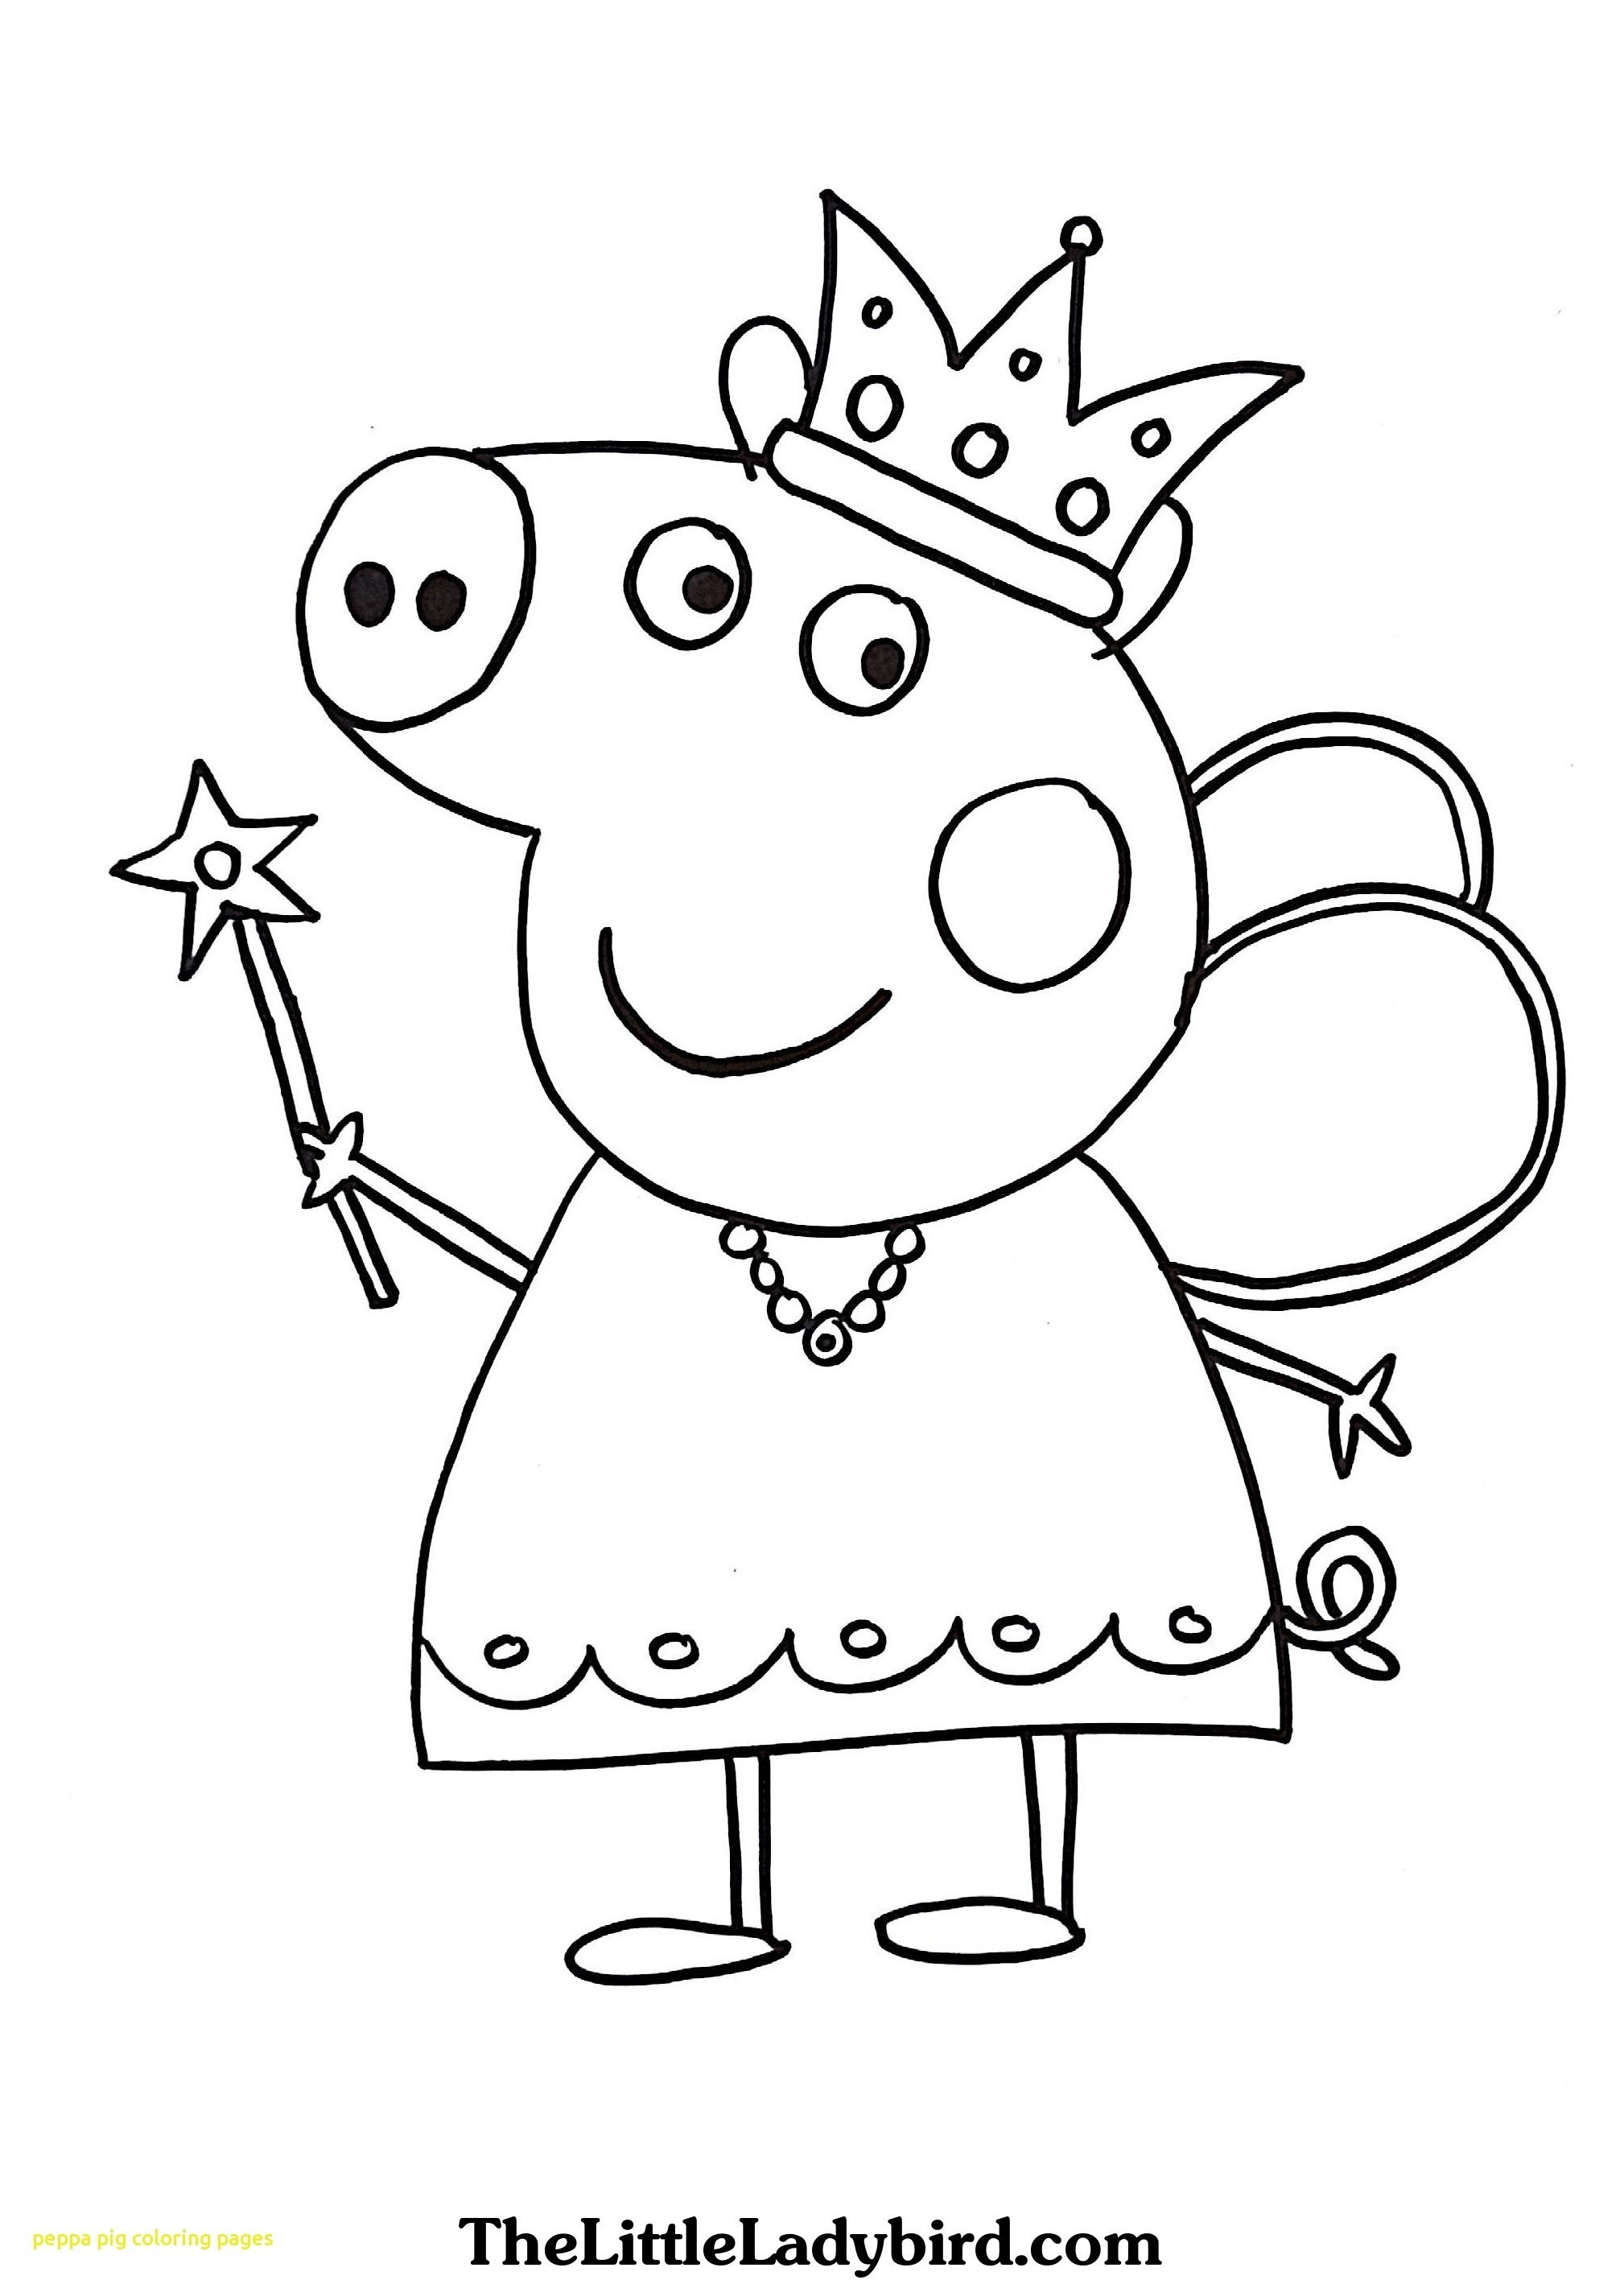 Halloween Coloring Pages Pdf Halloween Coloring Pages Printable ...